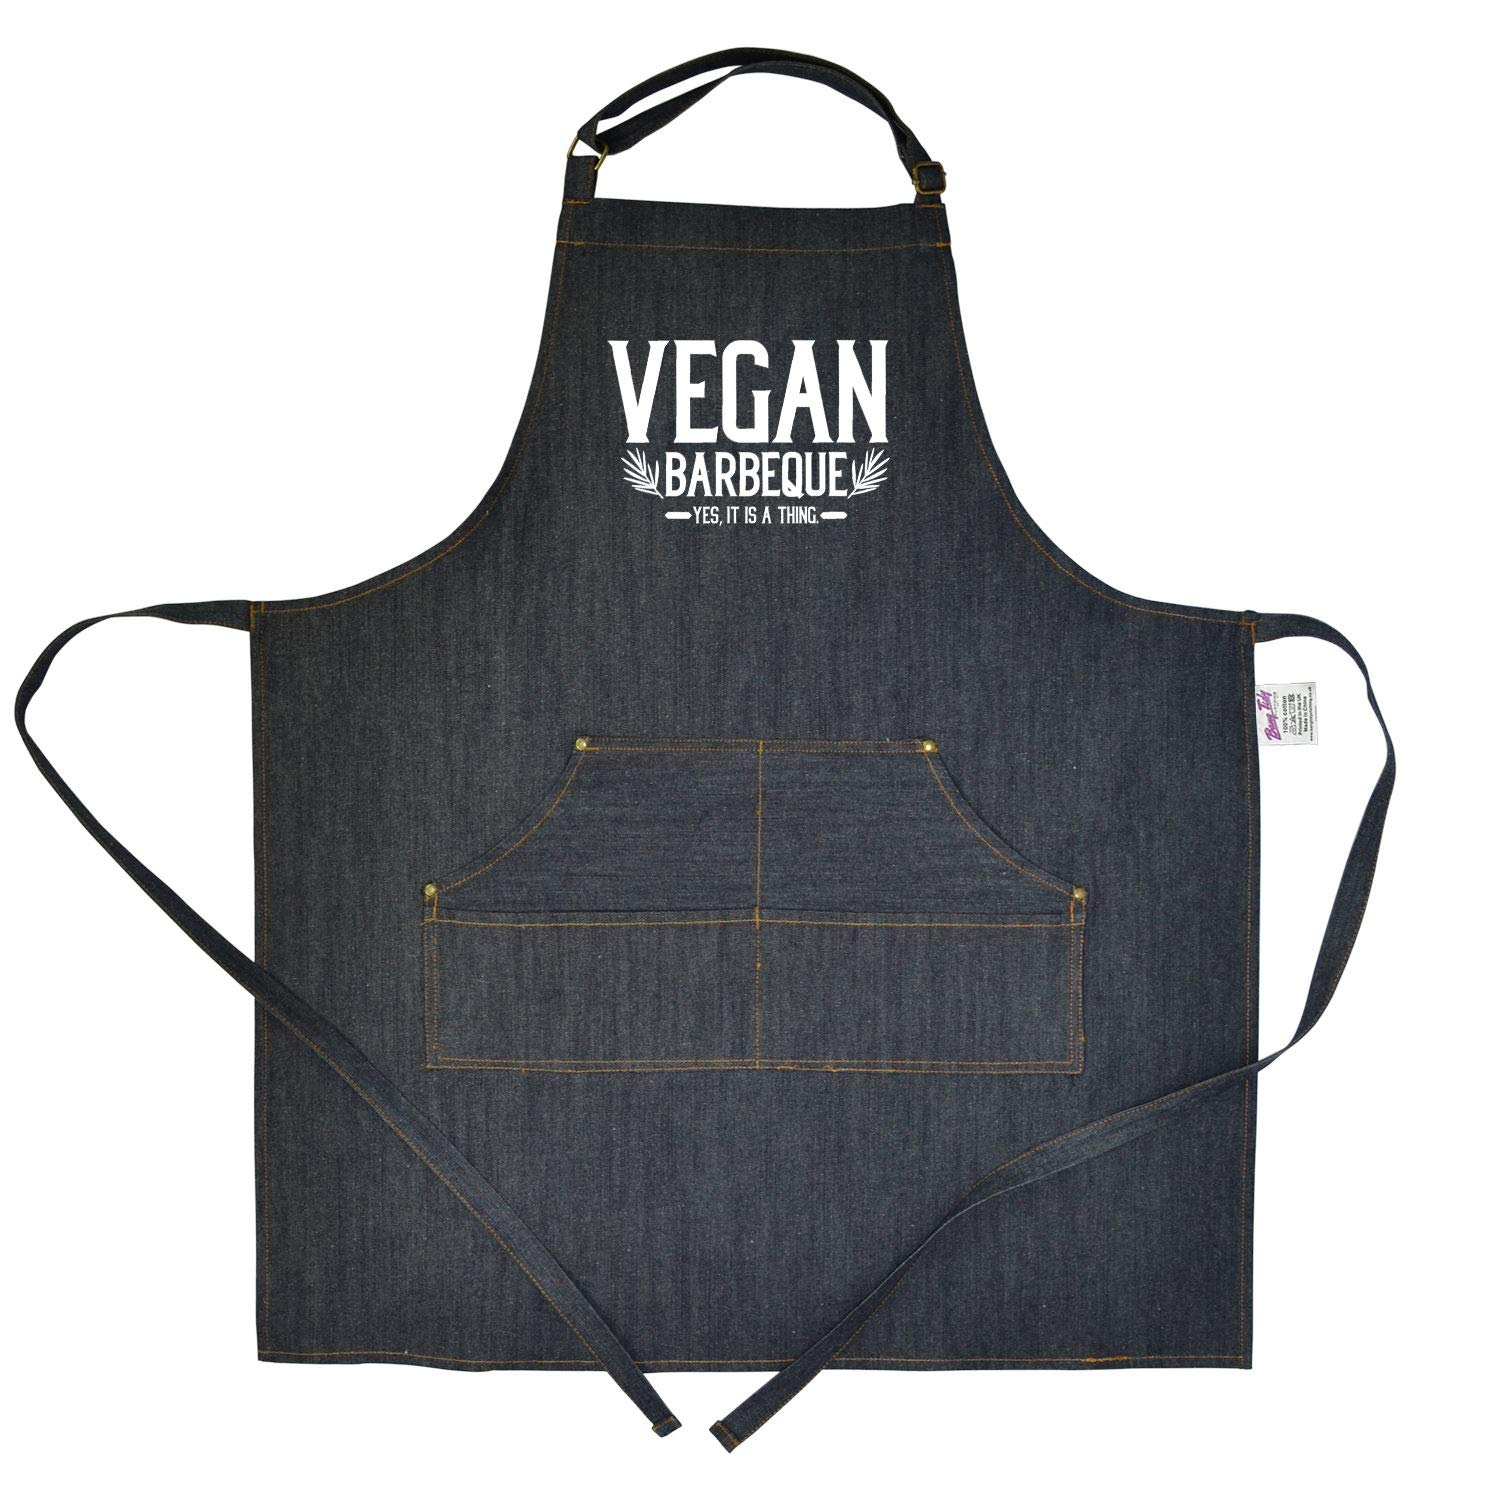 Bang Tidy Clothing Funny BBQ Denim Apron Novelty Cooking Gifts for Men Vegan Barbeque